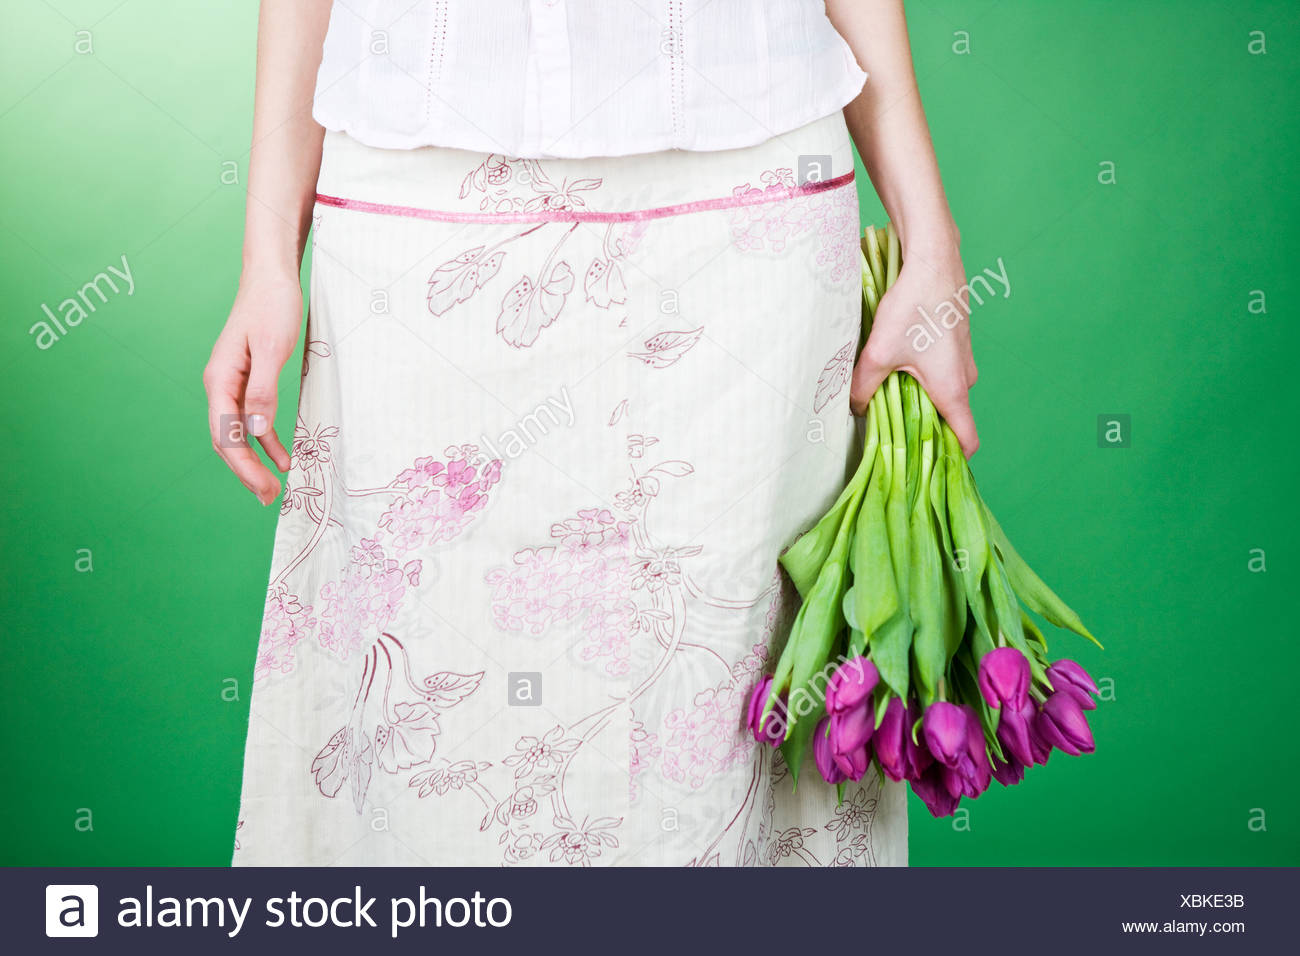 Une femme tenant un bouquet de tulipes violet Photo Stock